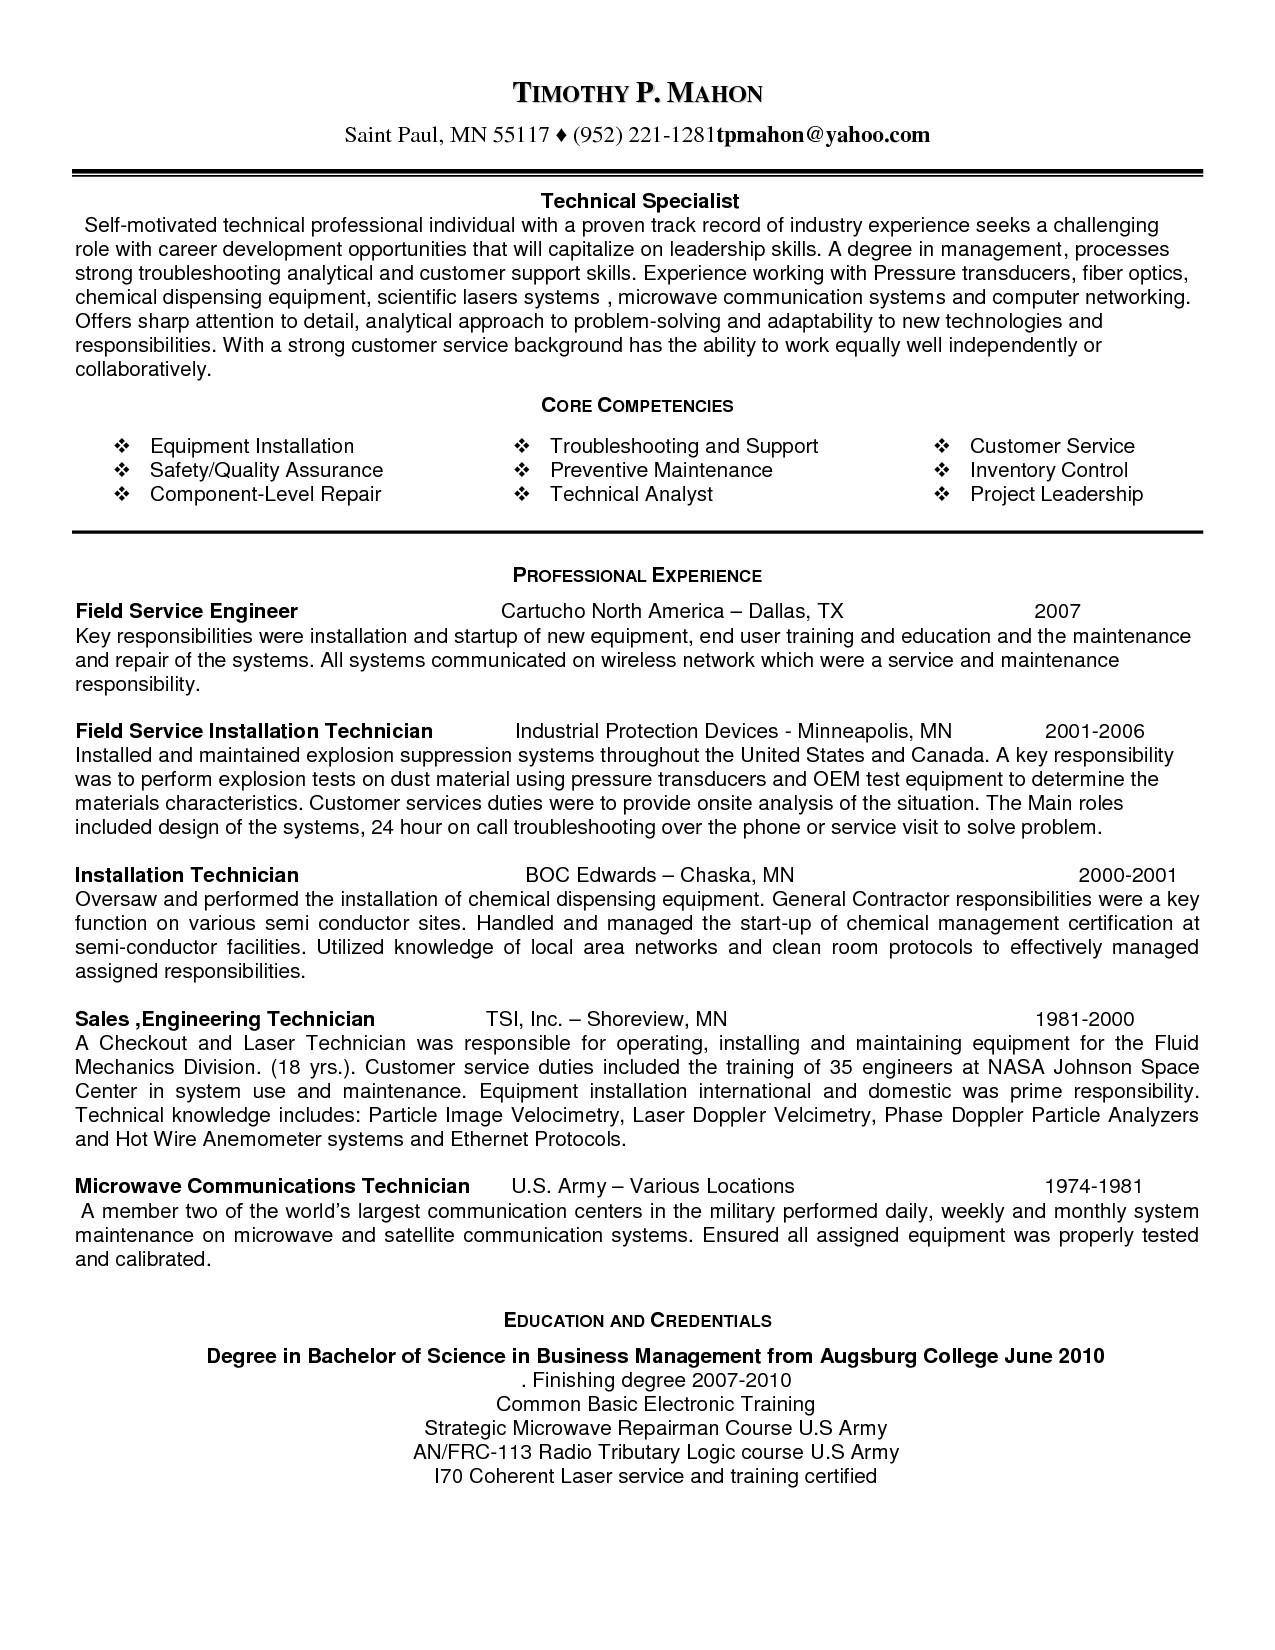 Resume Customer Service - Sample Resume Customer Service Best Unique Examples Resumes